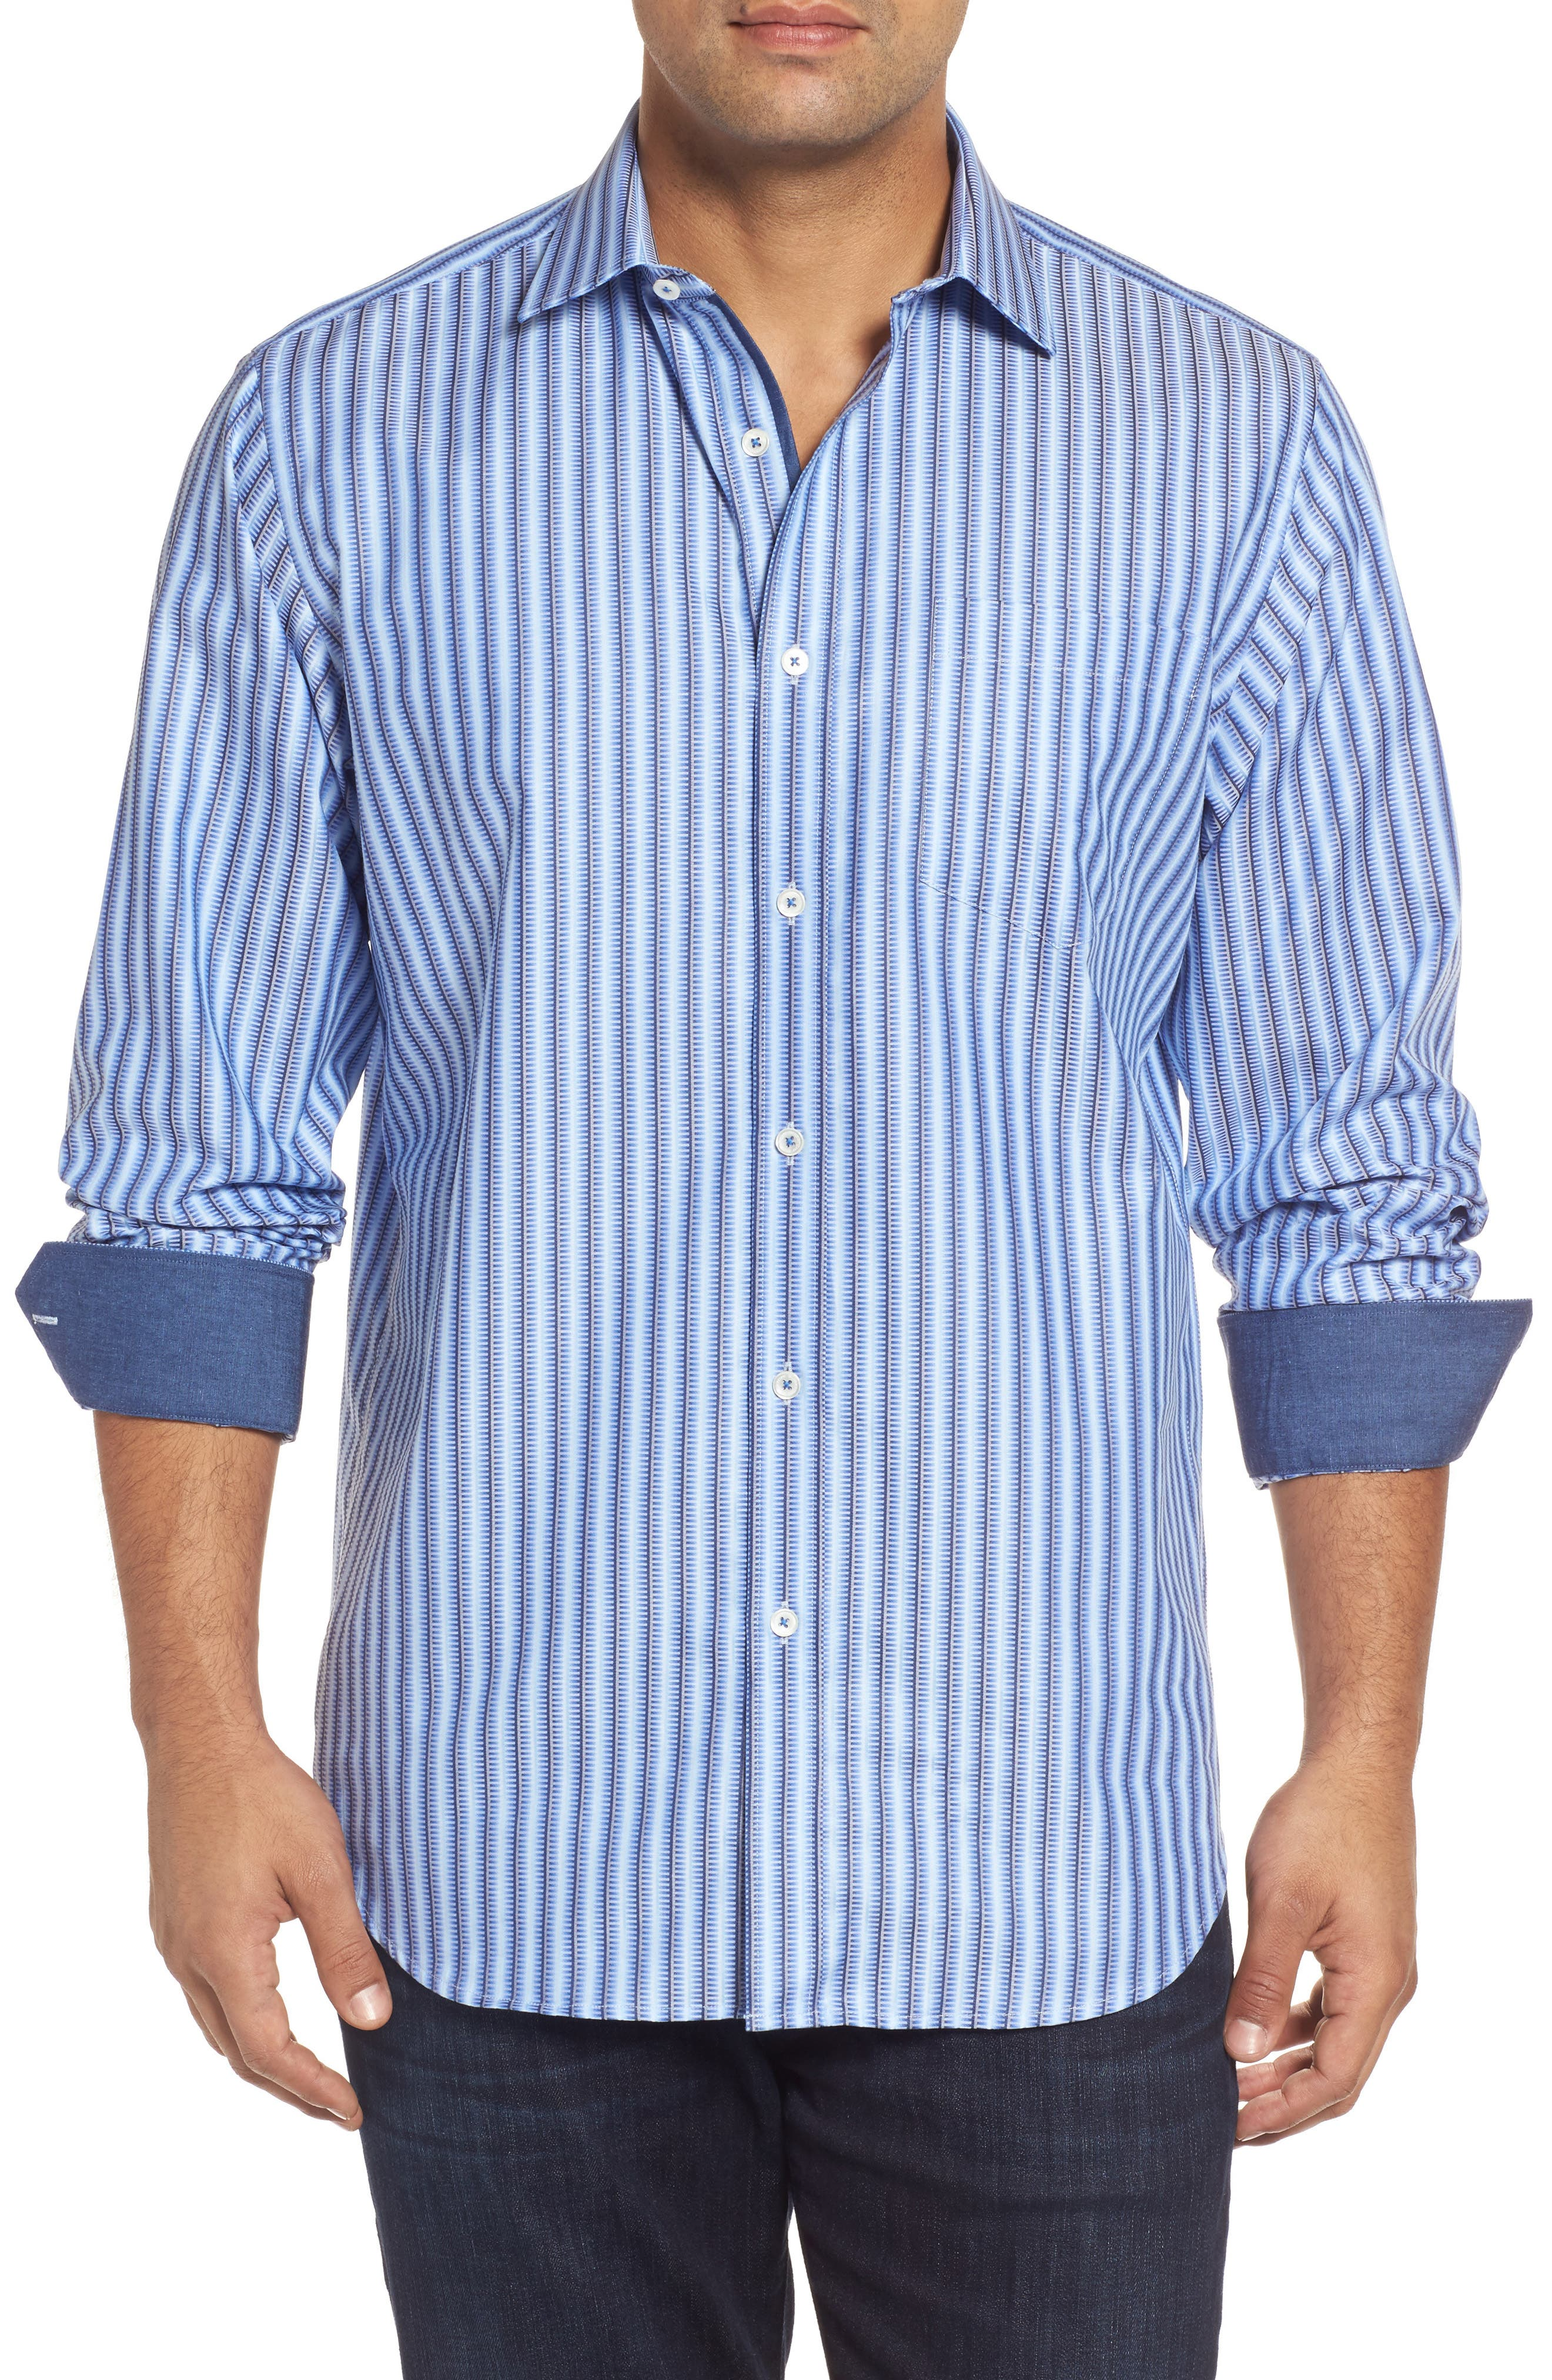 Alternate Image 1 Selected - Bugatchi Classic Fit Striped Sport Shirt